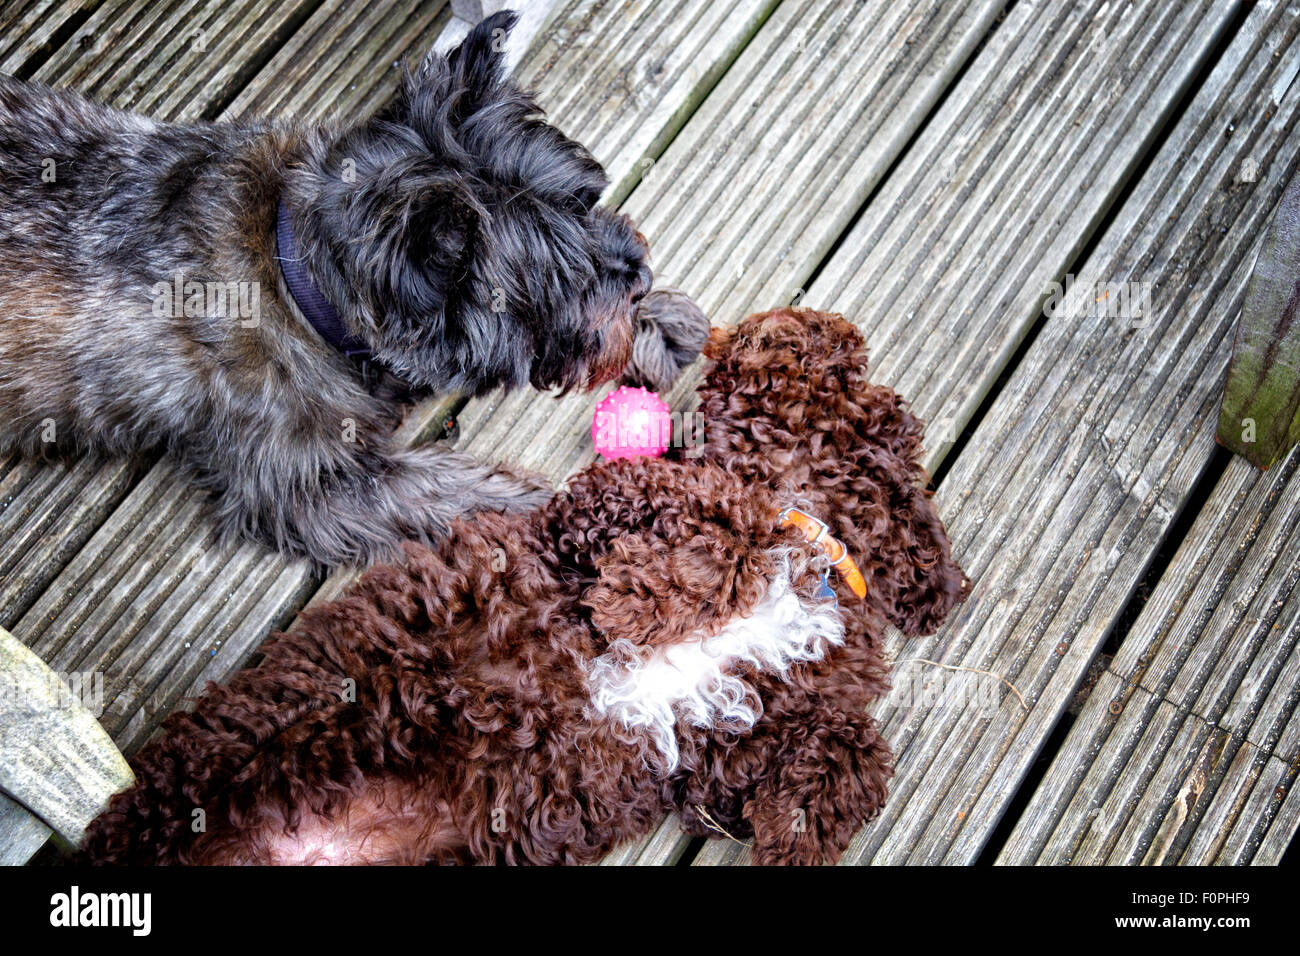 Cairn terrier dog and a Cockerpoo puppy playing with a ball - Stock Image